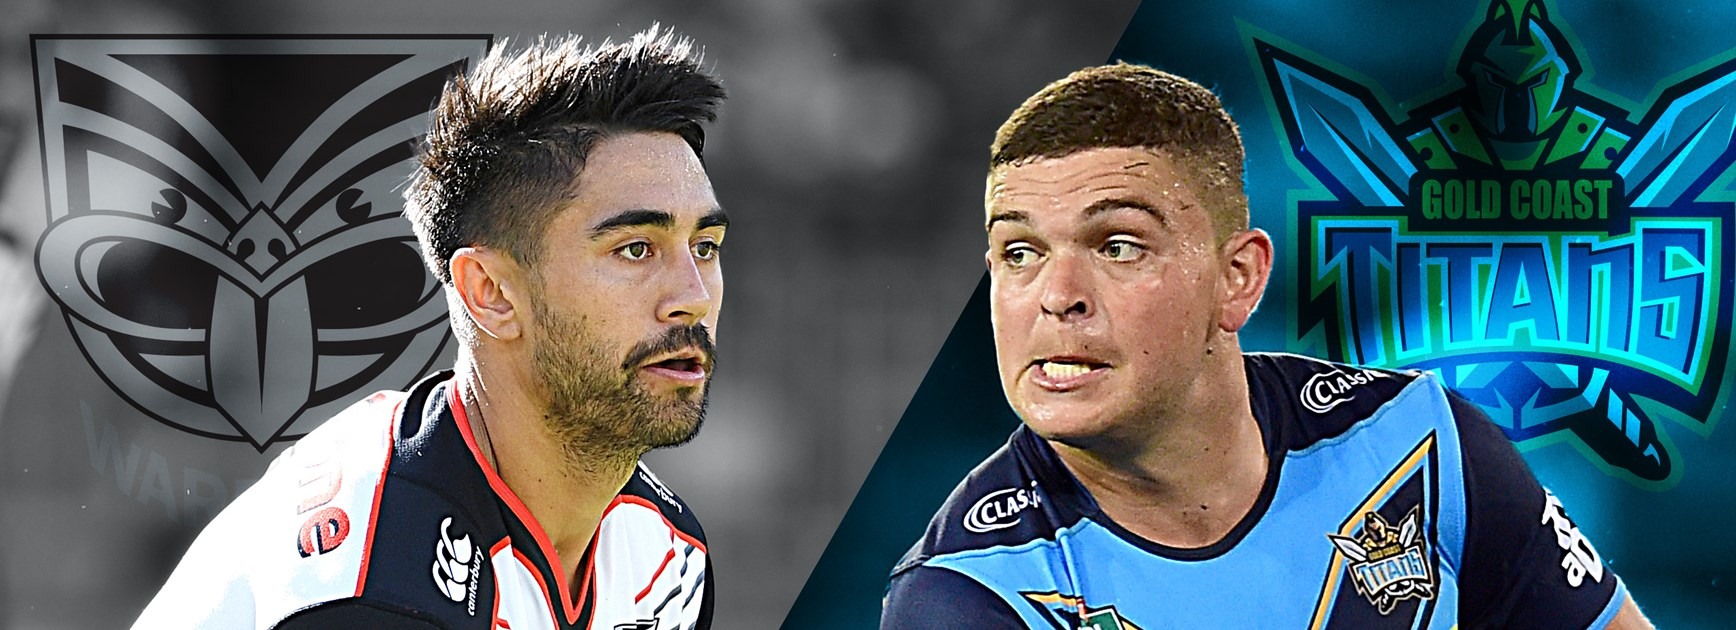 Warriors v Titans: Surprise round one winners face off